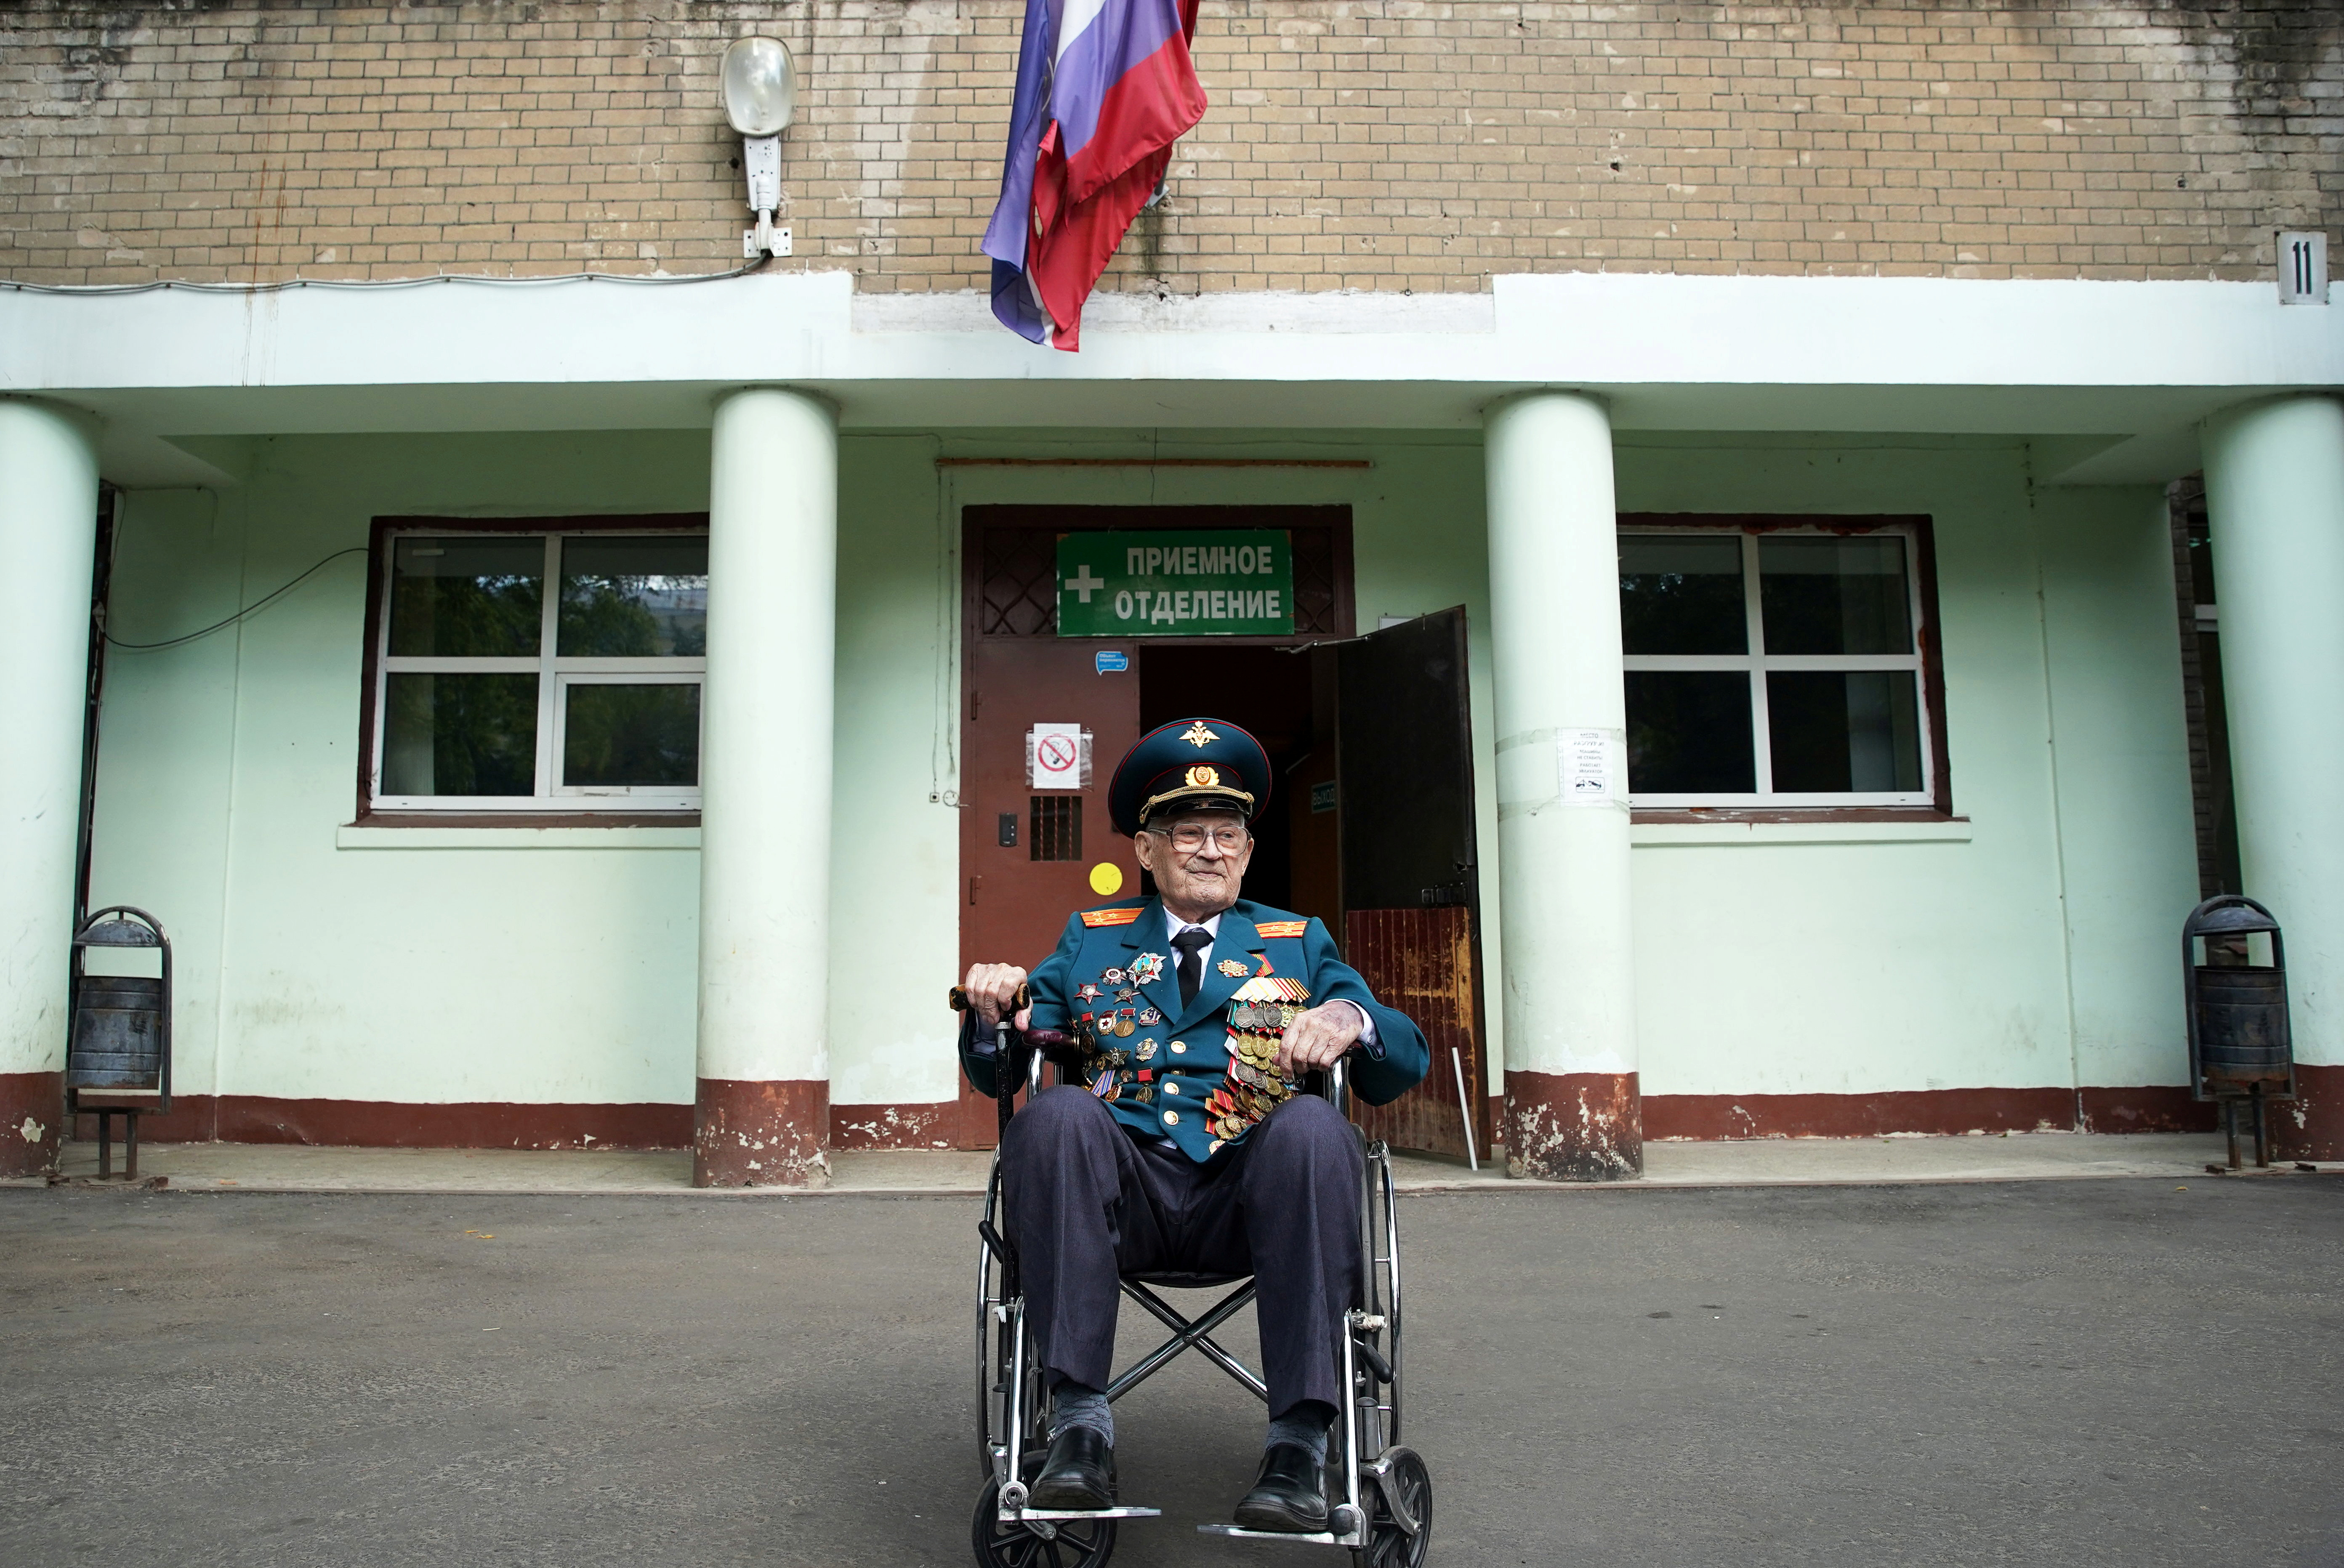 World War Two veteran Nikolay Bagayev, 102, leaves a hospital after being treated for the coronavirus disease (COVID-19) and discharged, in Korolyov, Moscow region, Russia July 22, 2021.  REUTERS/Tatyana Makeyeva